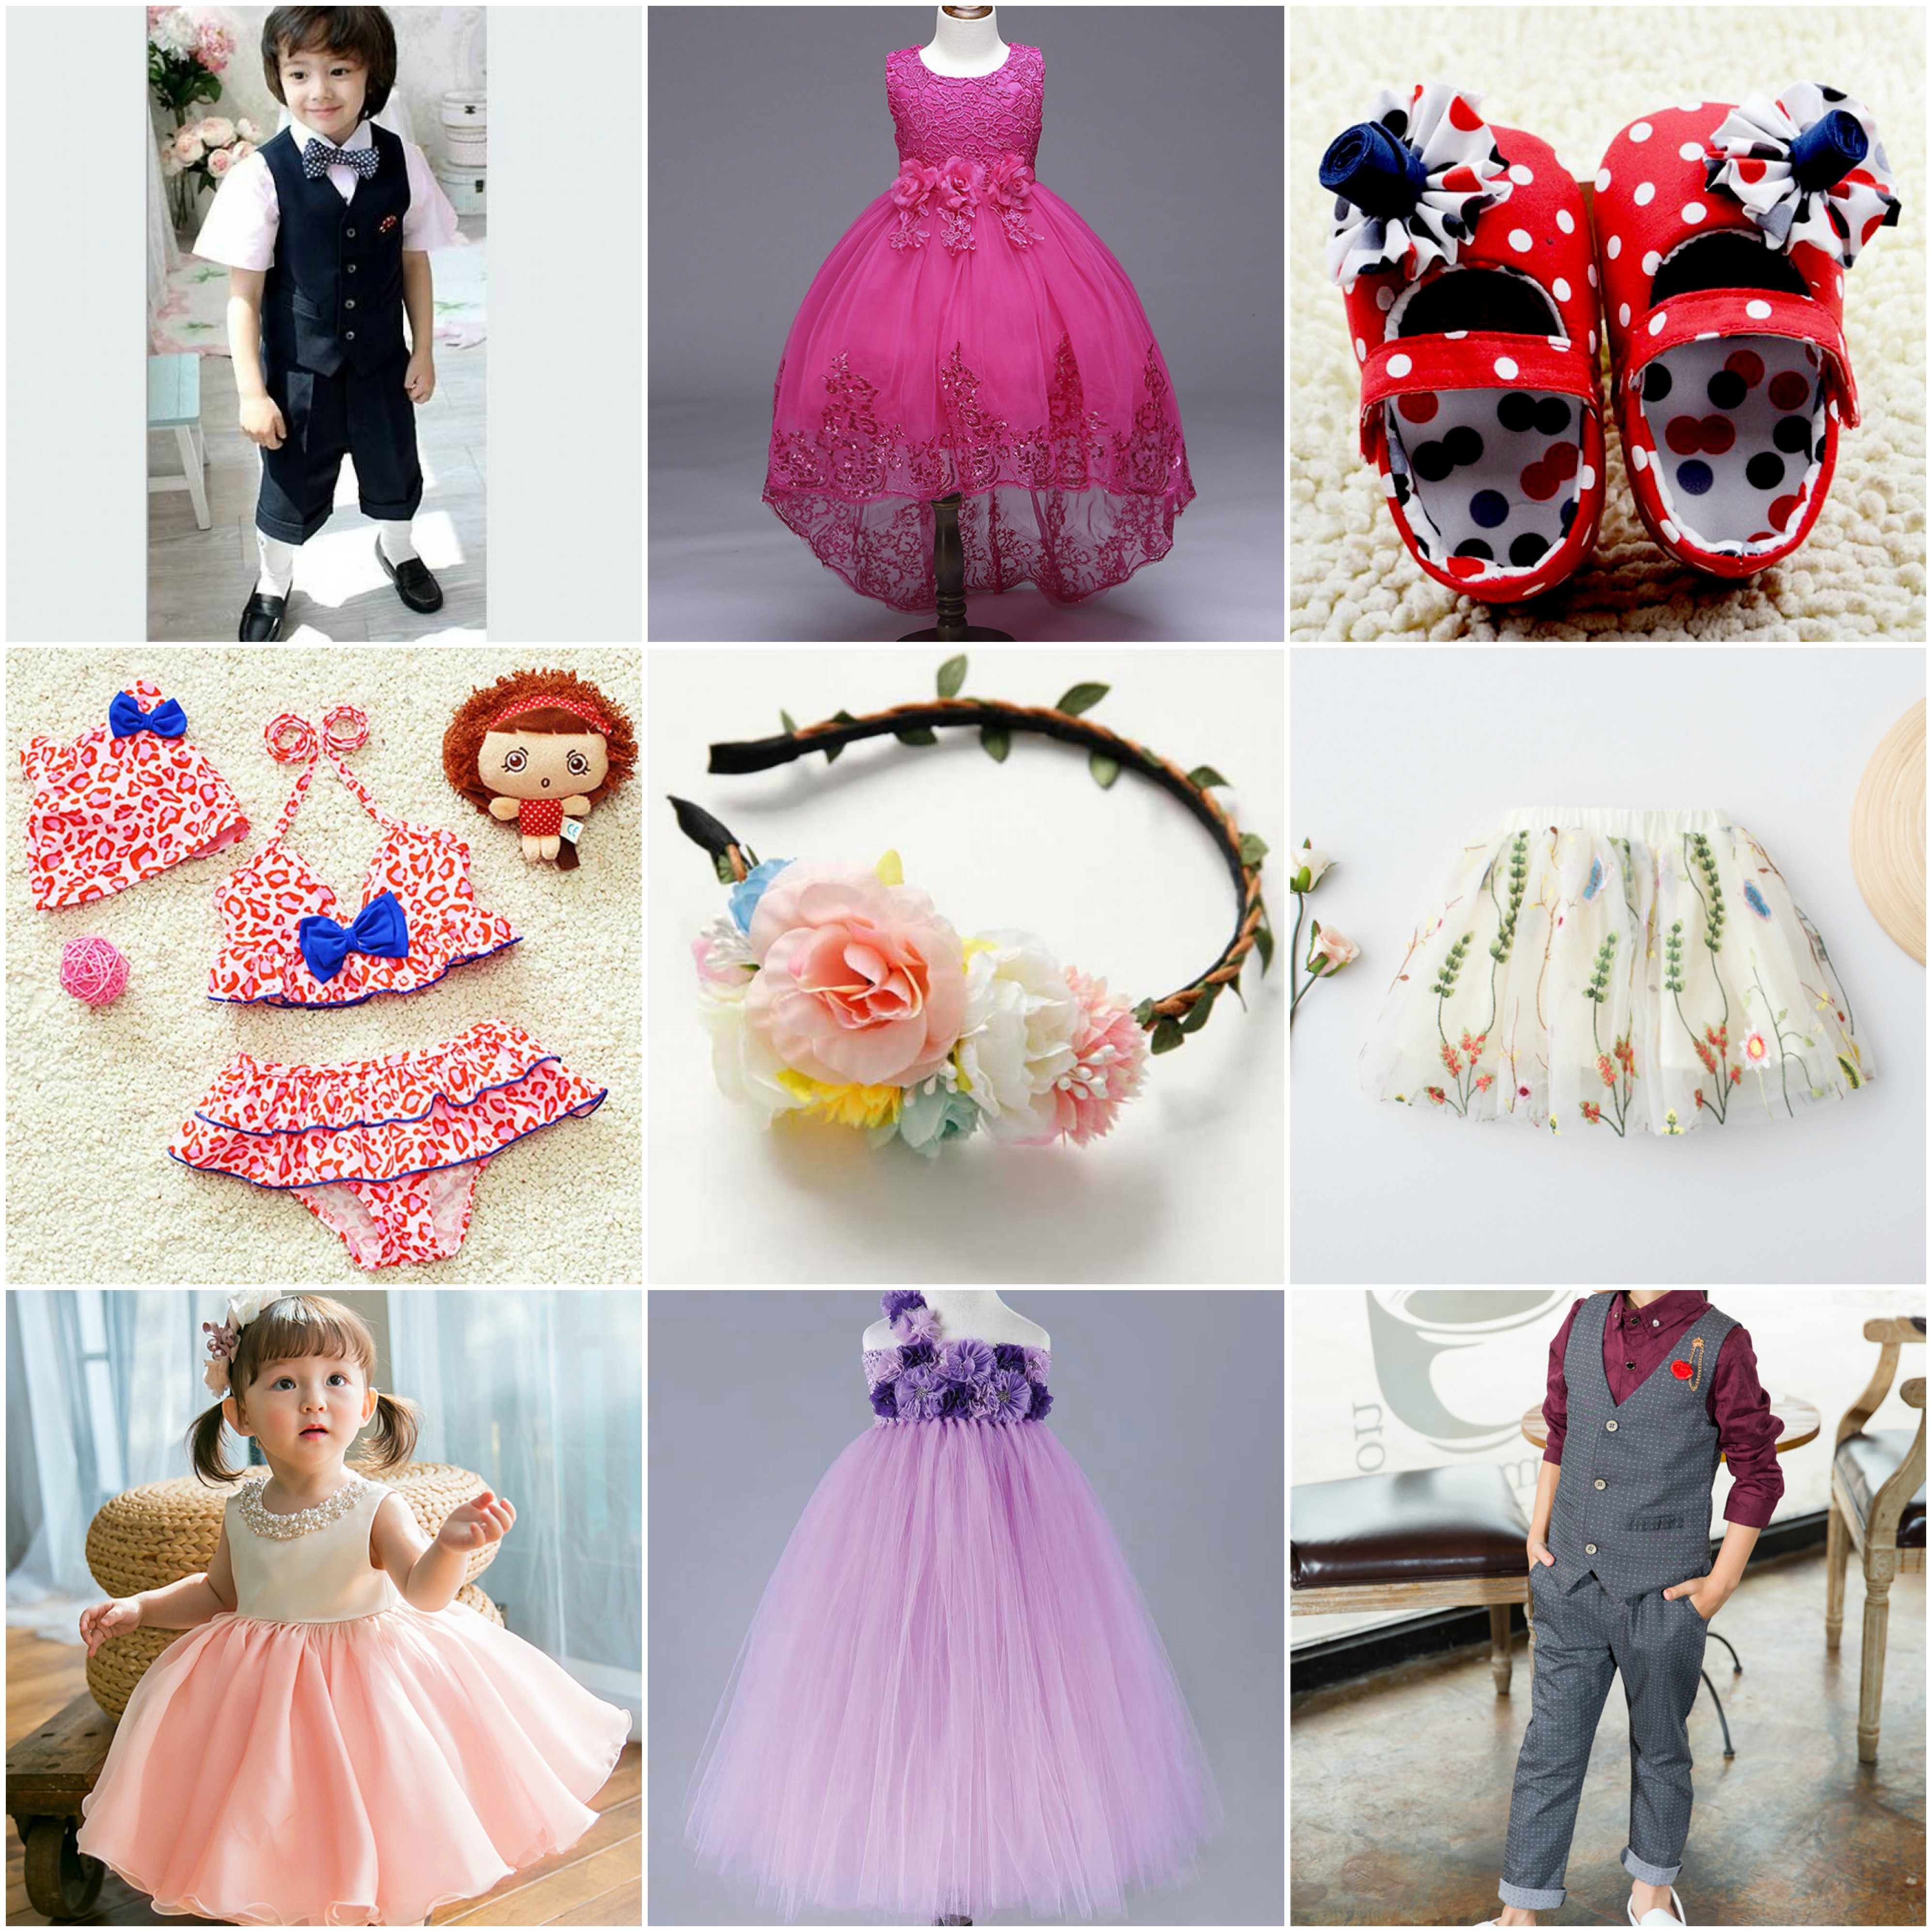 Online Shopping For Kids In Delhi - Baby Couture India